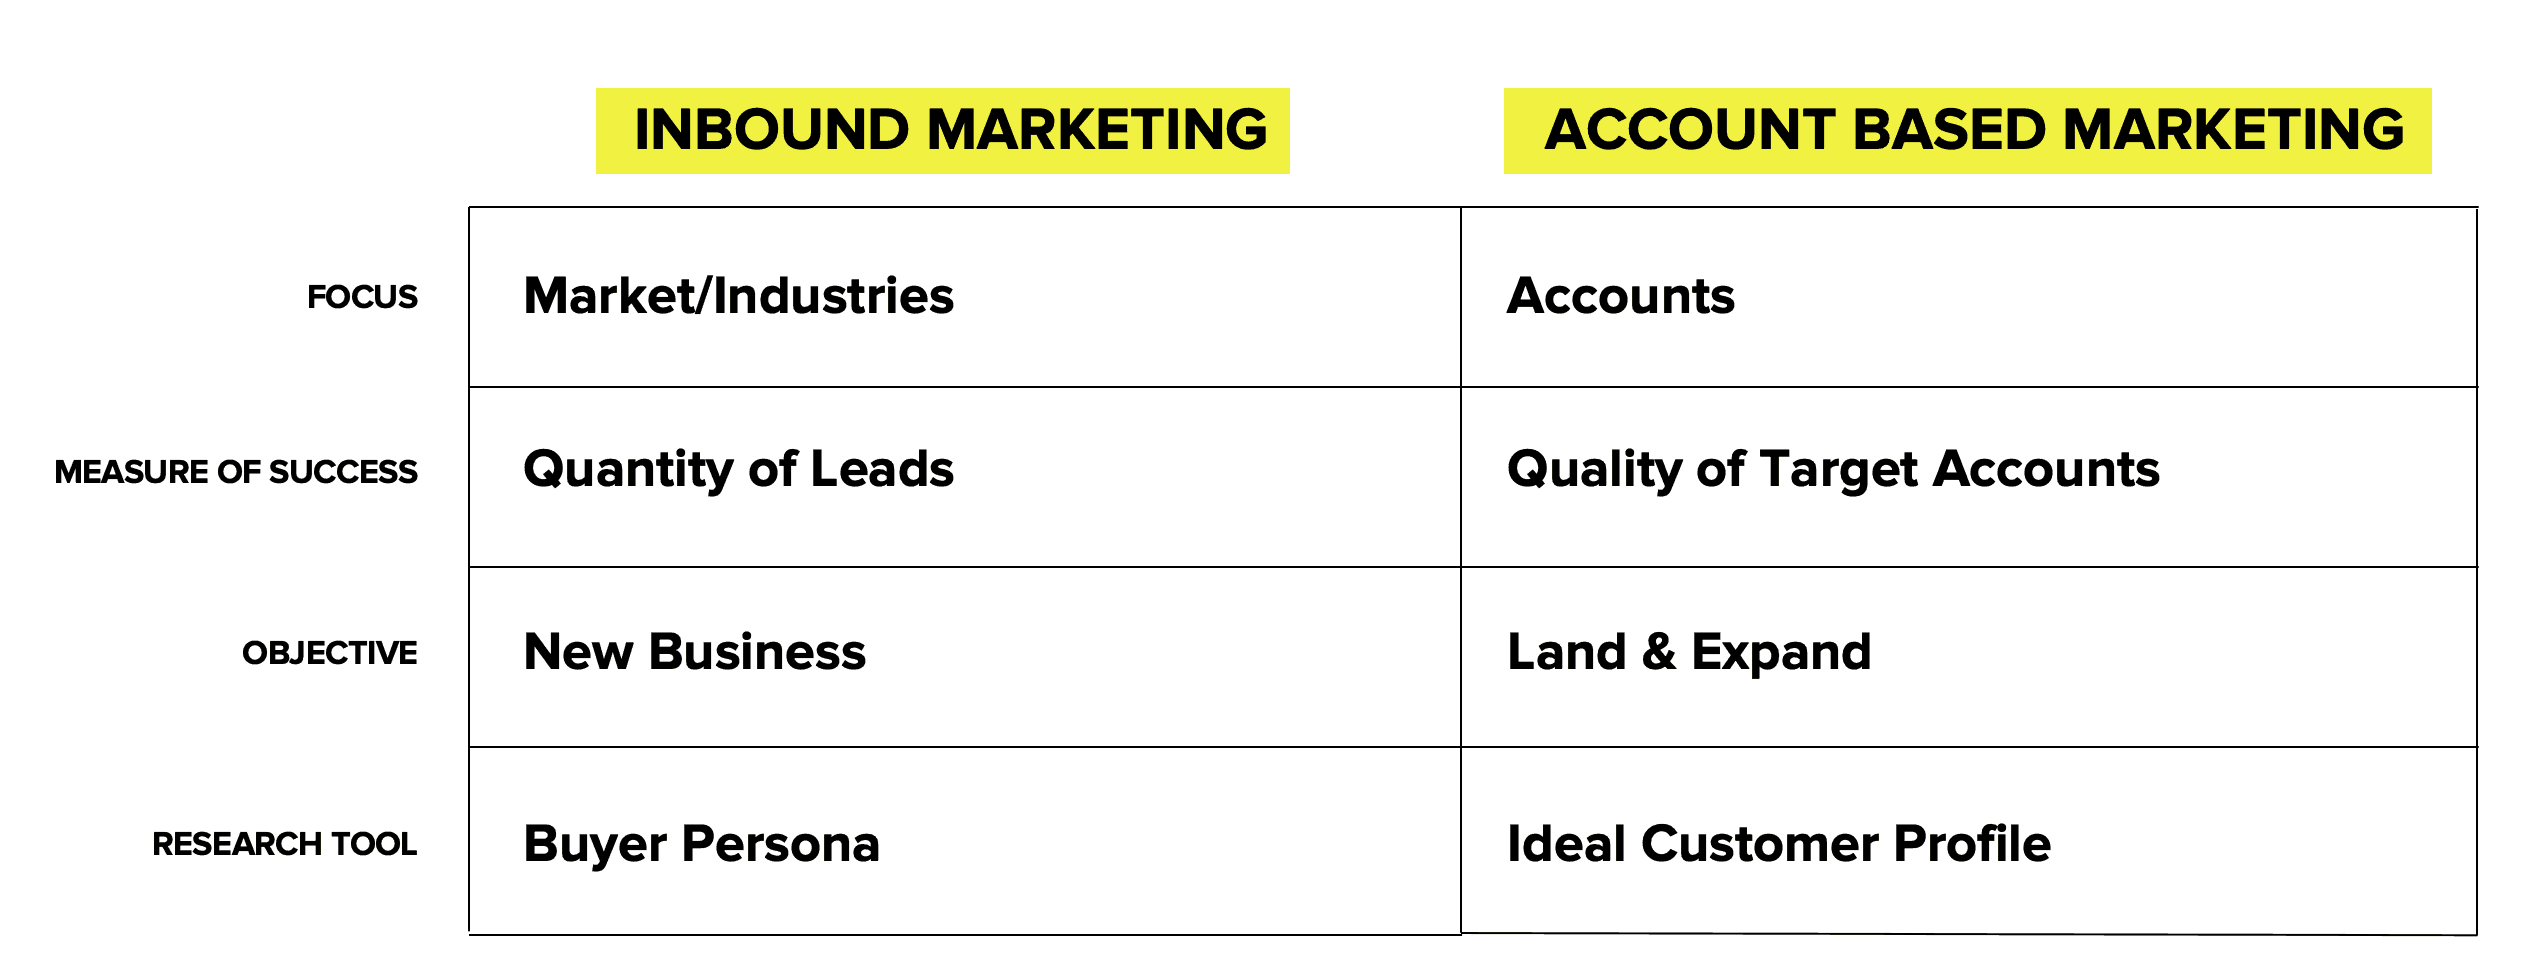 account based marketing vs inbound marketing